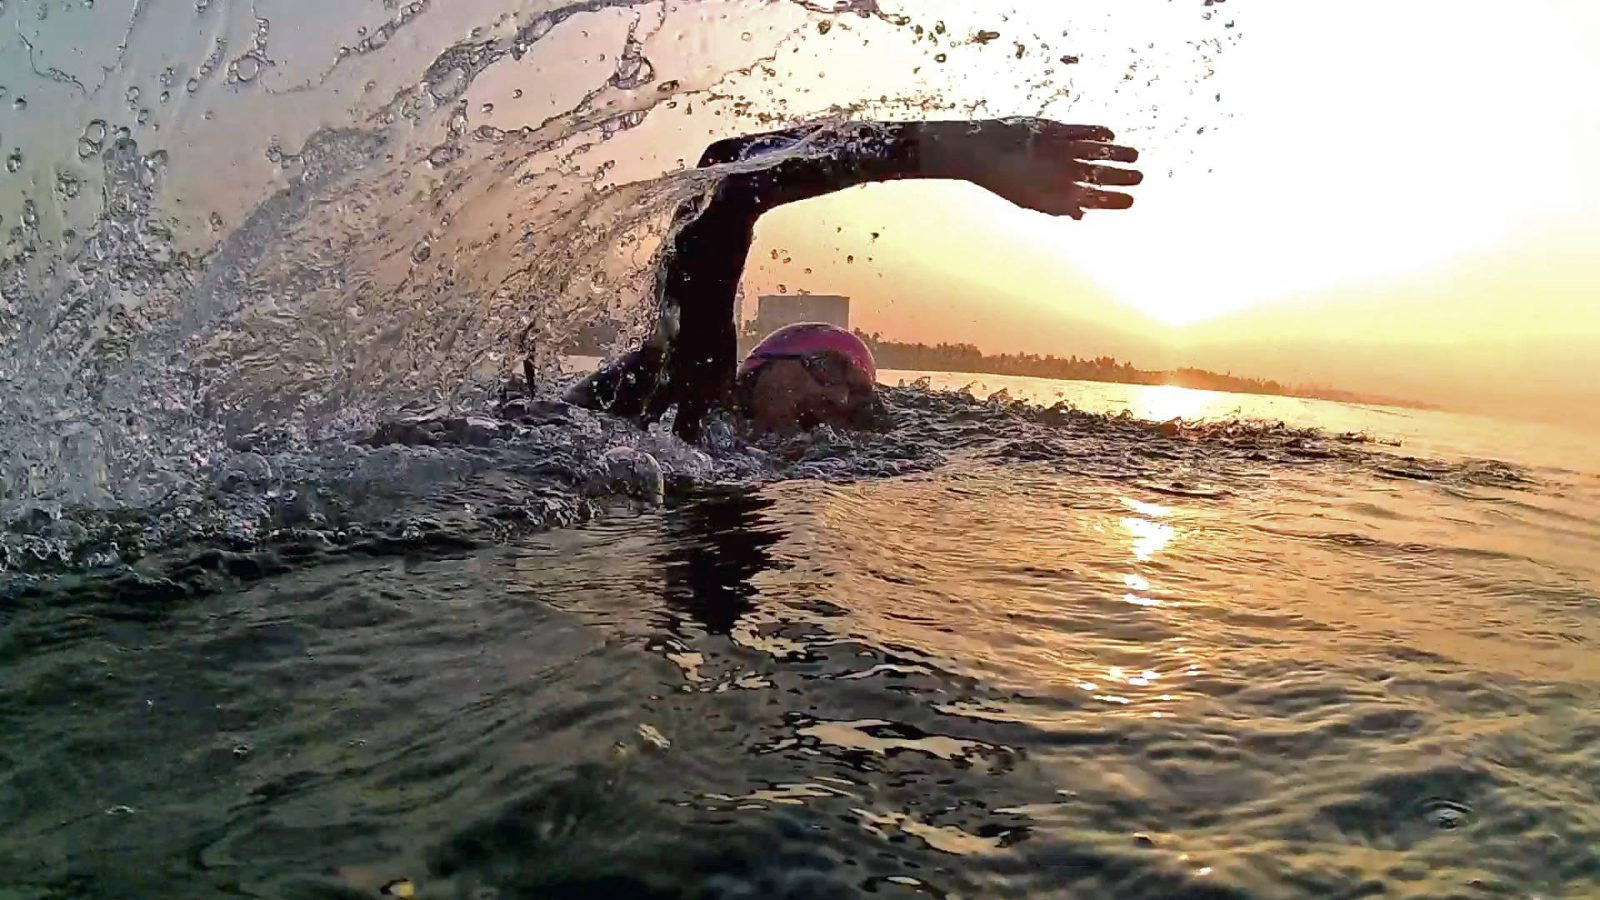 Challenges of Open Water Swimming in a Polluted Ocean